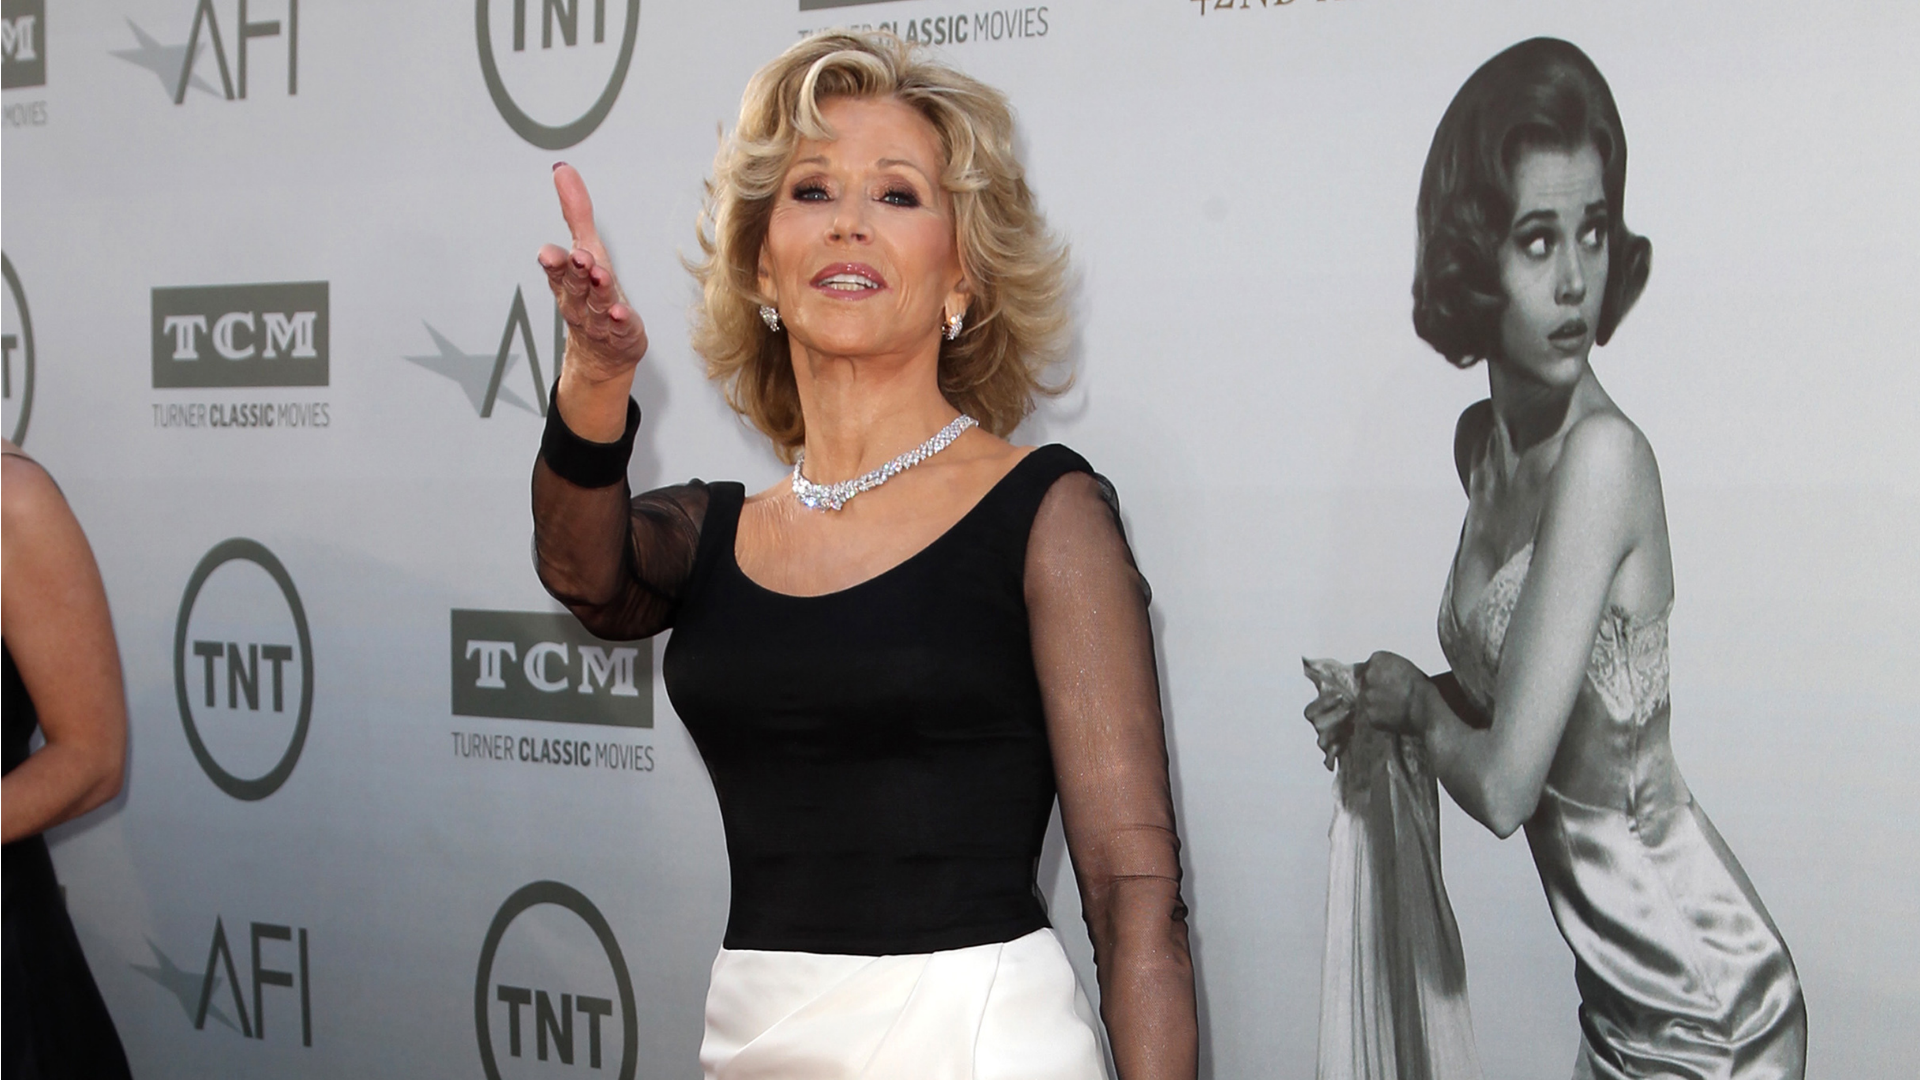 Jane Fonda has a chair with Ryan Gosling's face on it, but why?